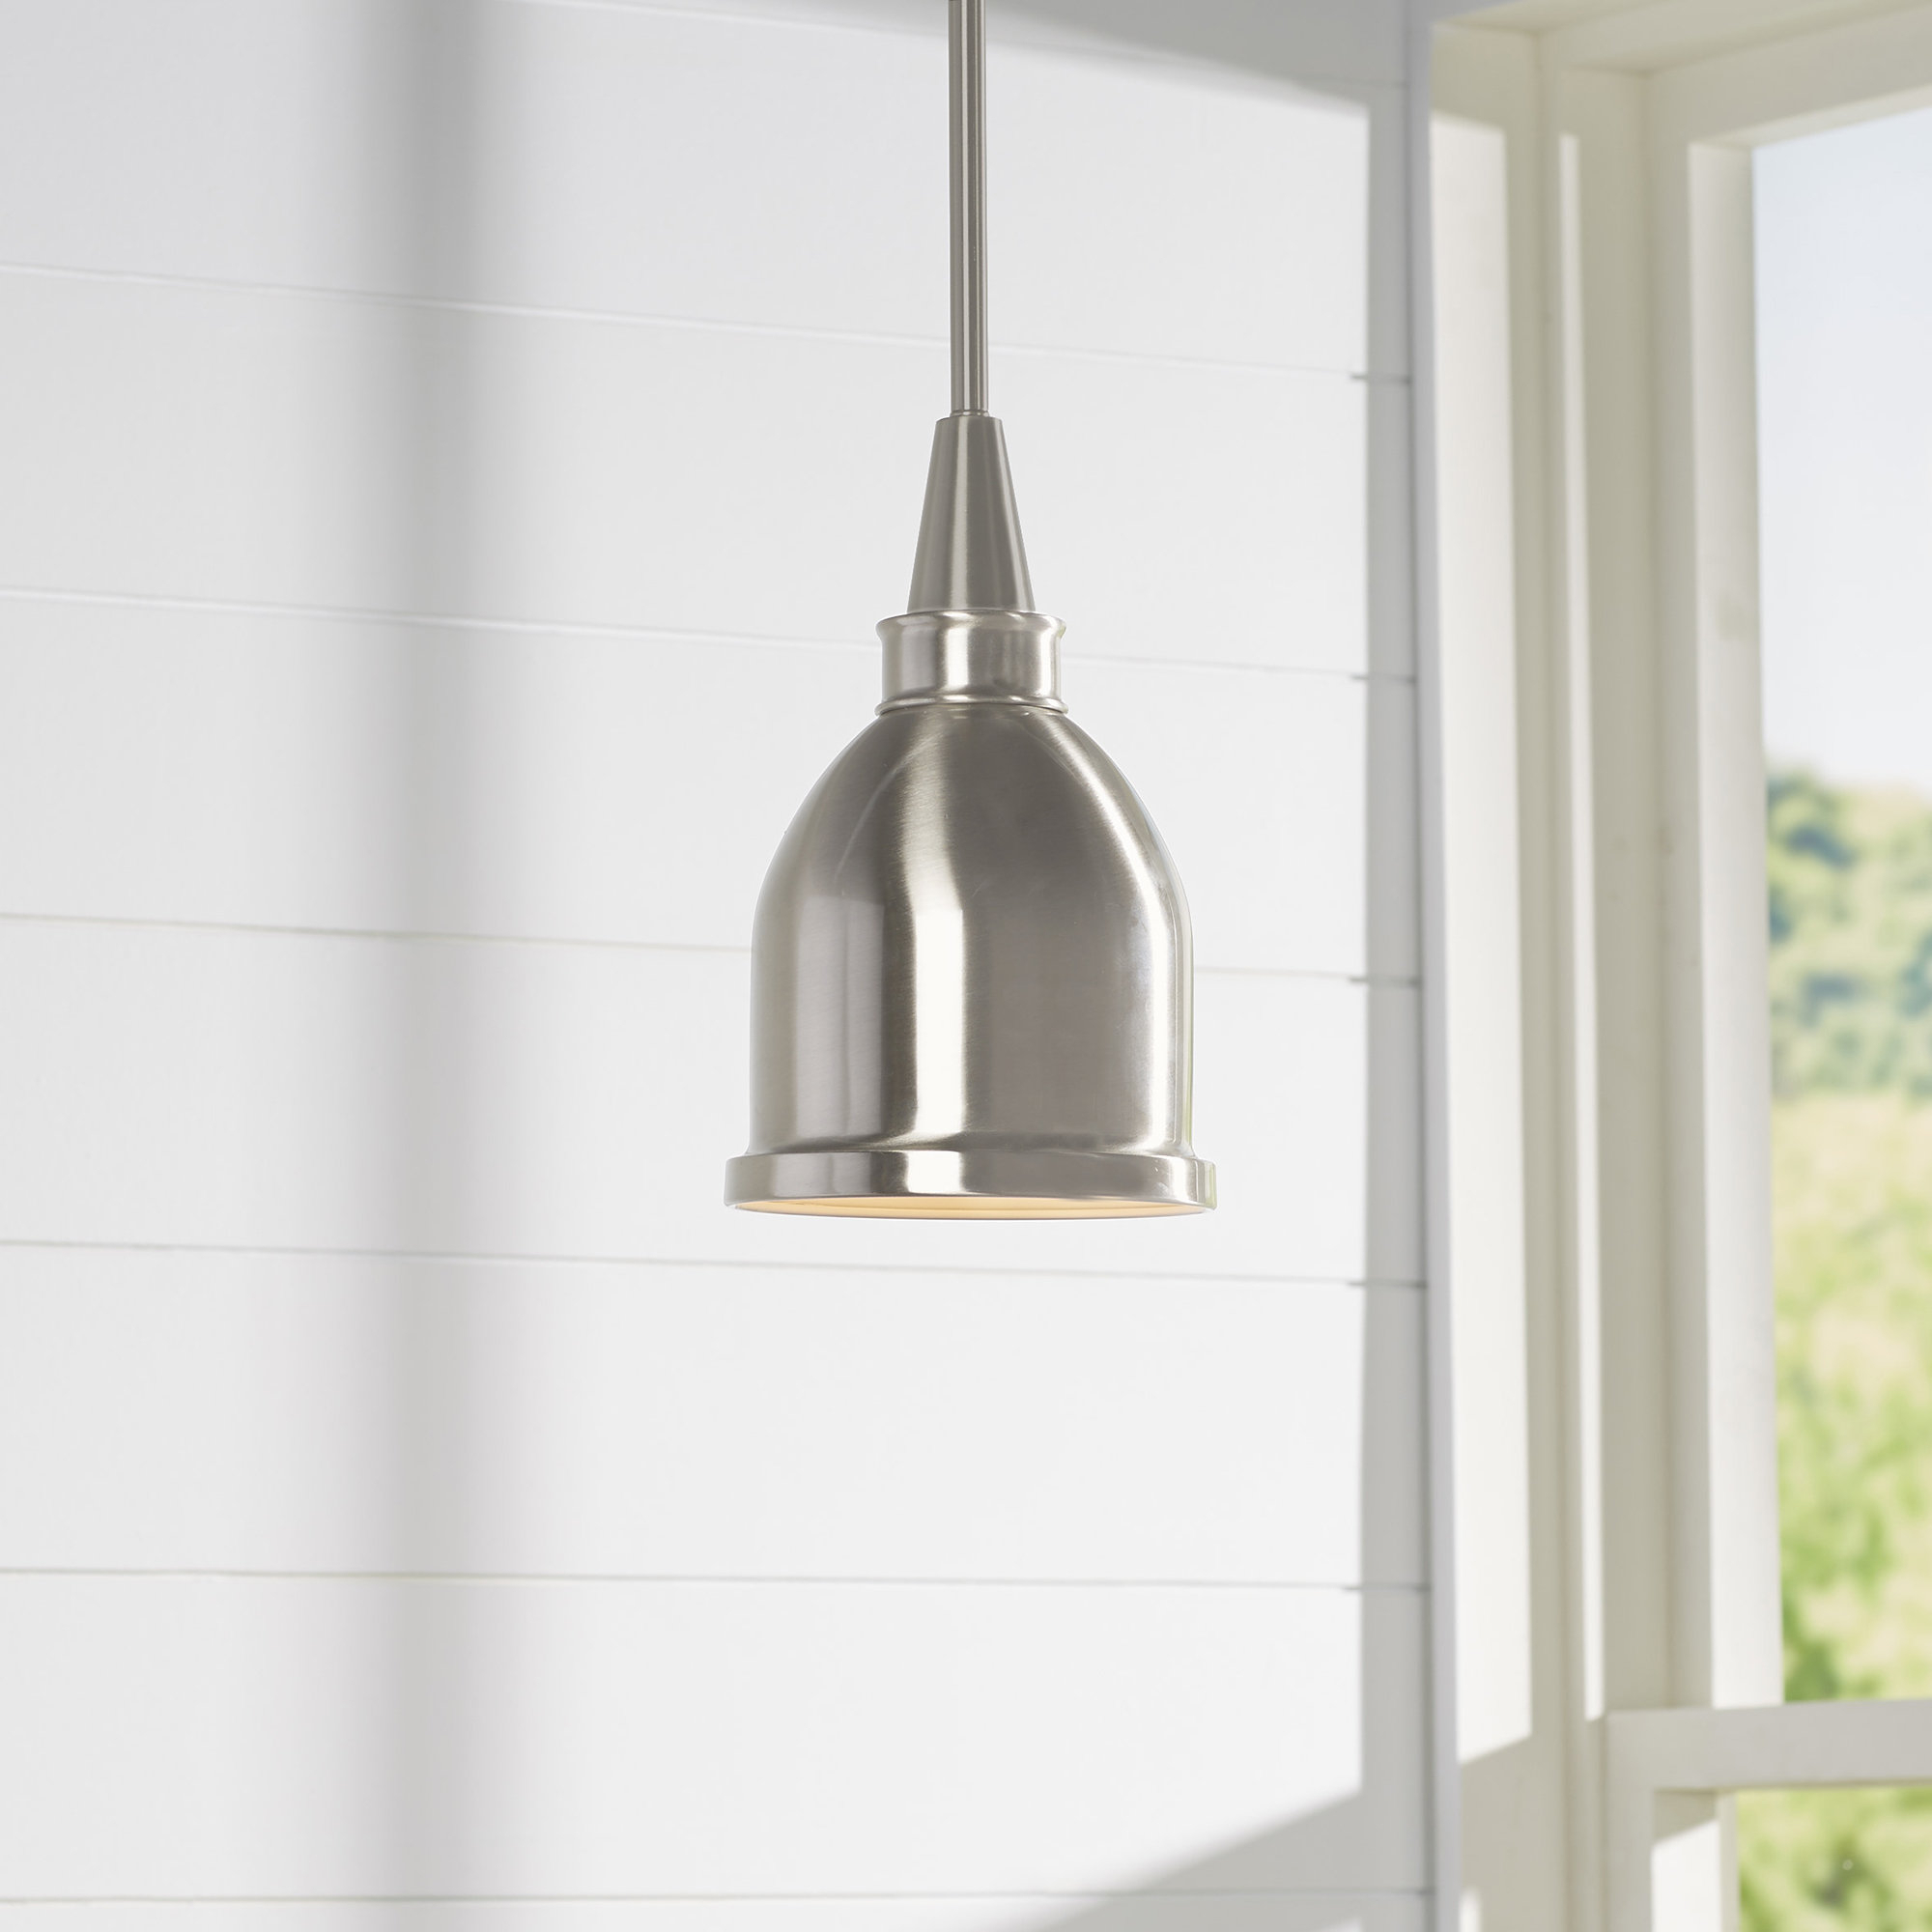 Manston 1 Light Single Bell Pendant Throughout Widely Used Hamilton 1 Light Single Dome Pendants (Gallery 8 of 20)